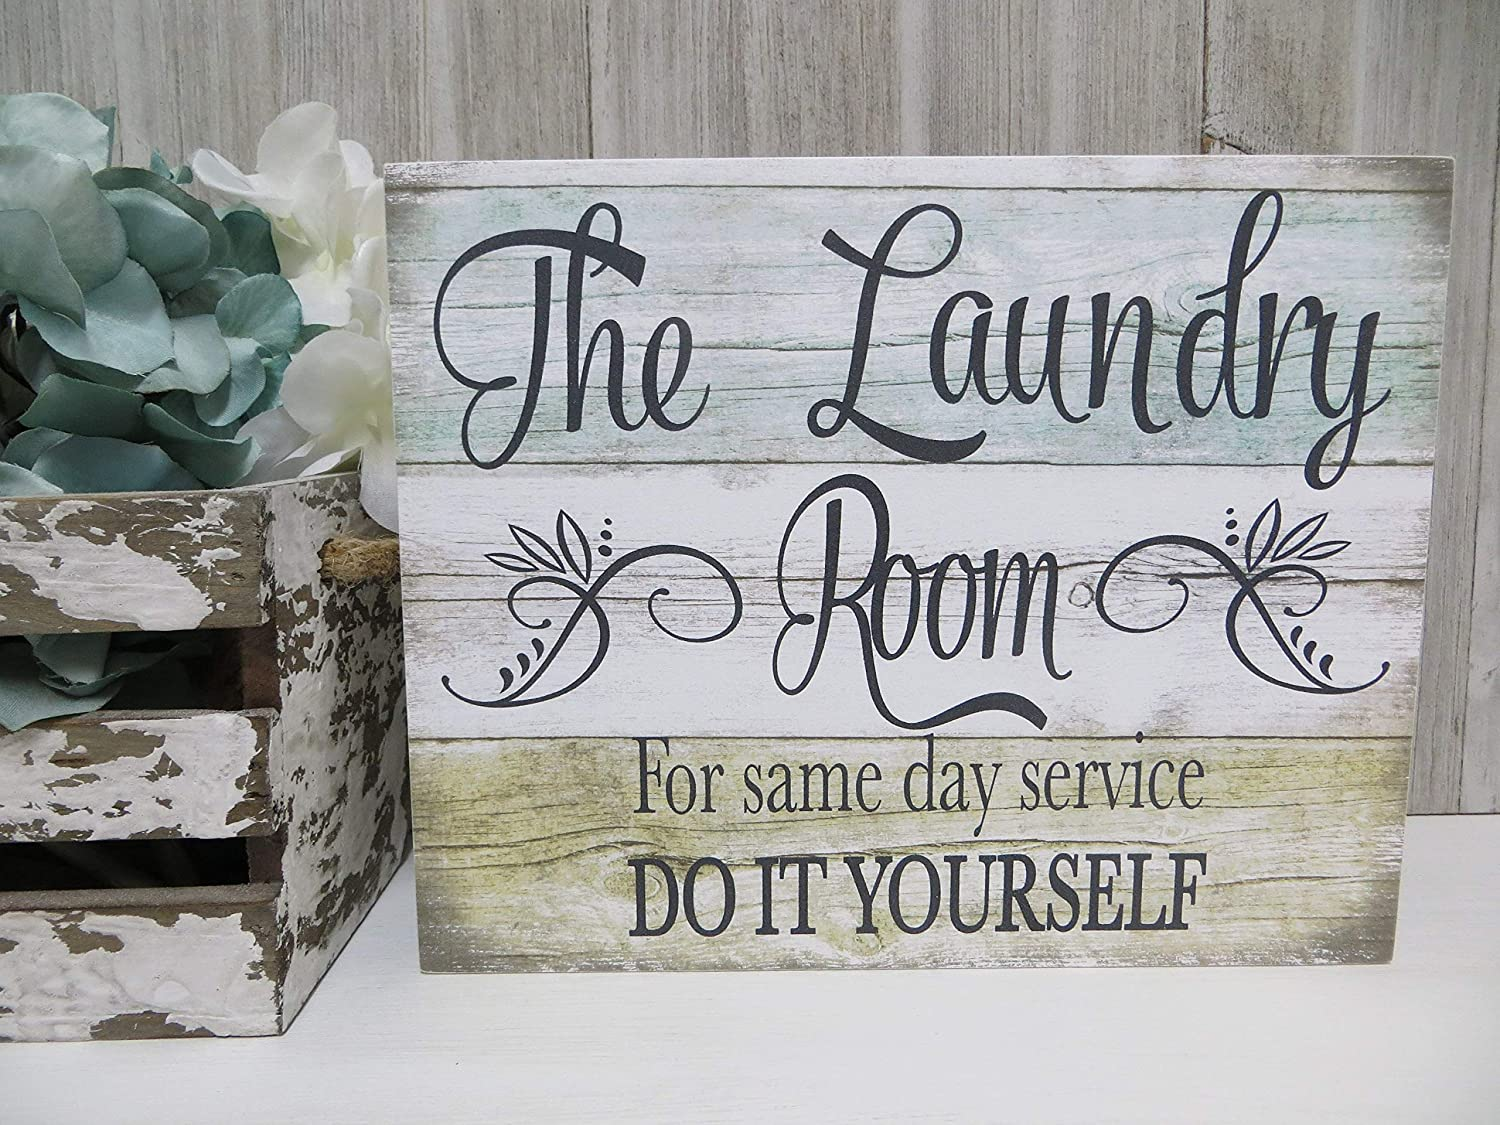 Decorative Sign Wood Laundry Room Sign The Laundry Room.for Same Day Service. Do It Yourself Funny Laundry Room Sign Laundry Room Decor Wood Plaque for Housewarming Gift